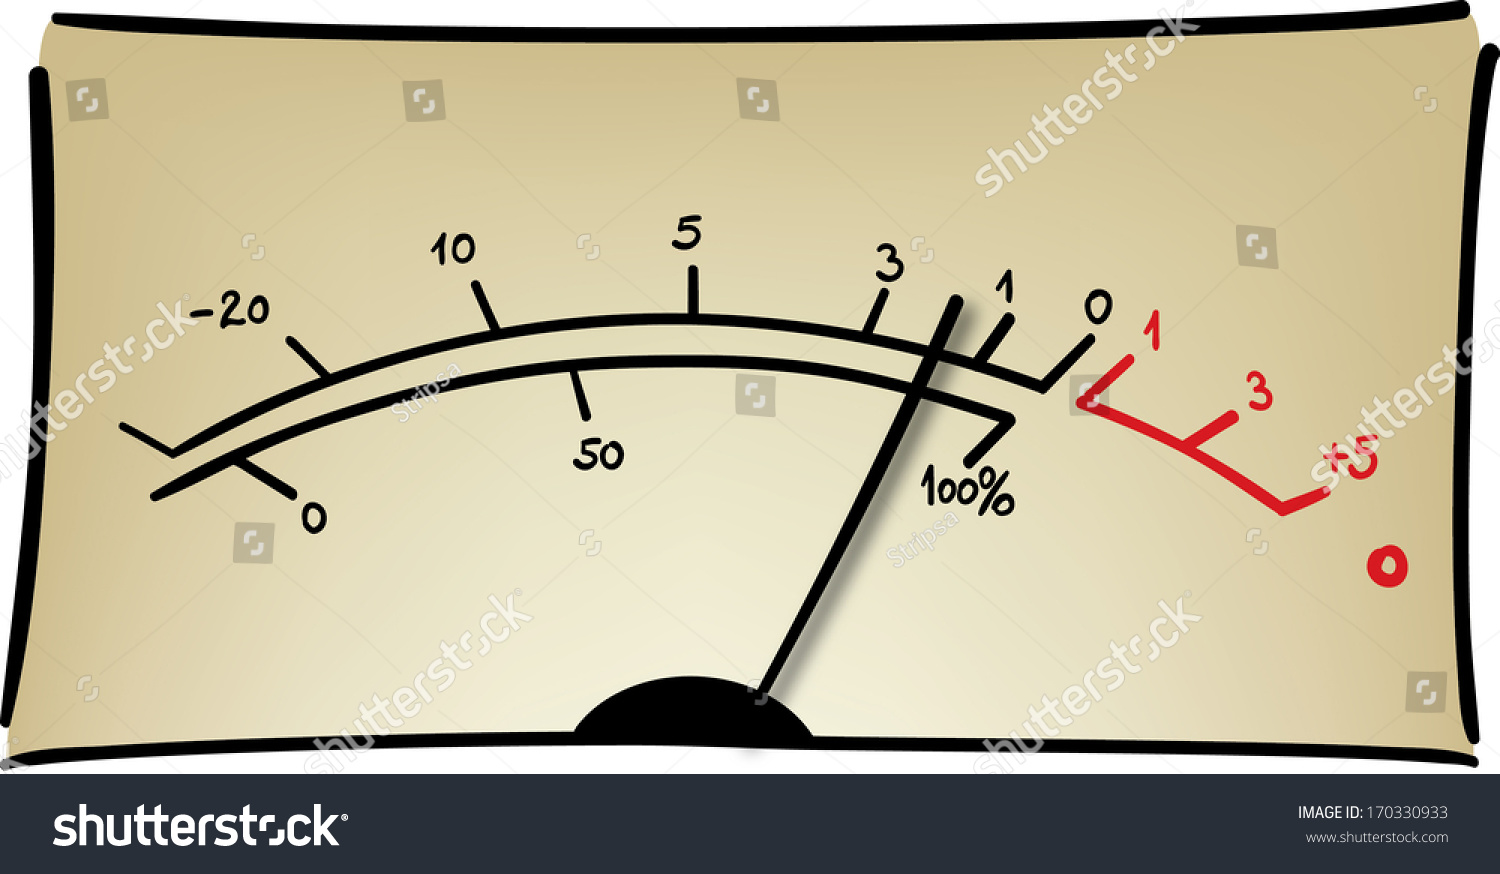 Analog Meter Needle : Analog measuring device with the needle in motion audio